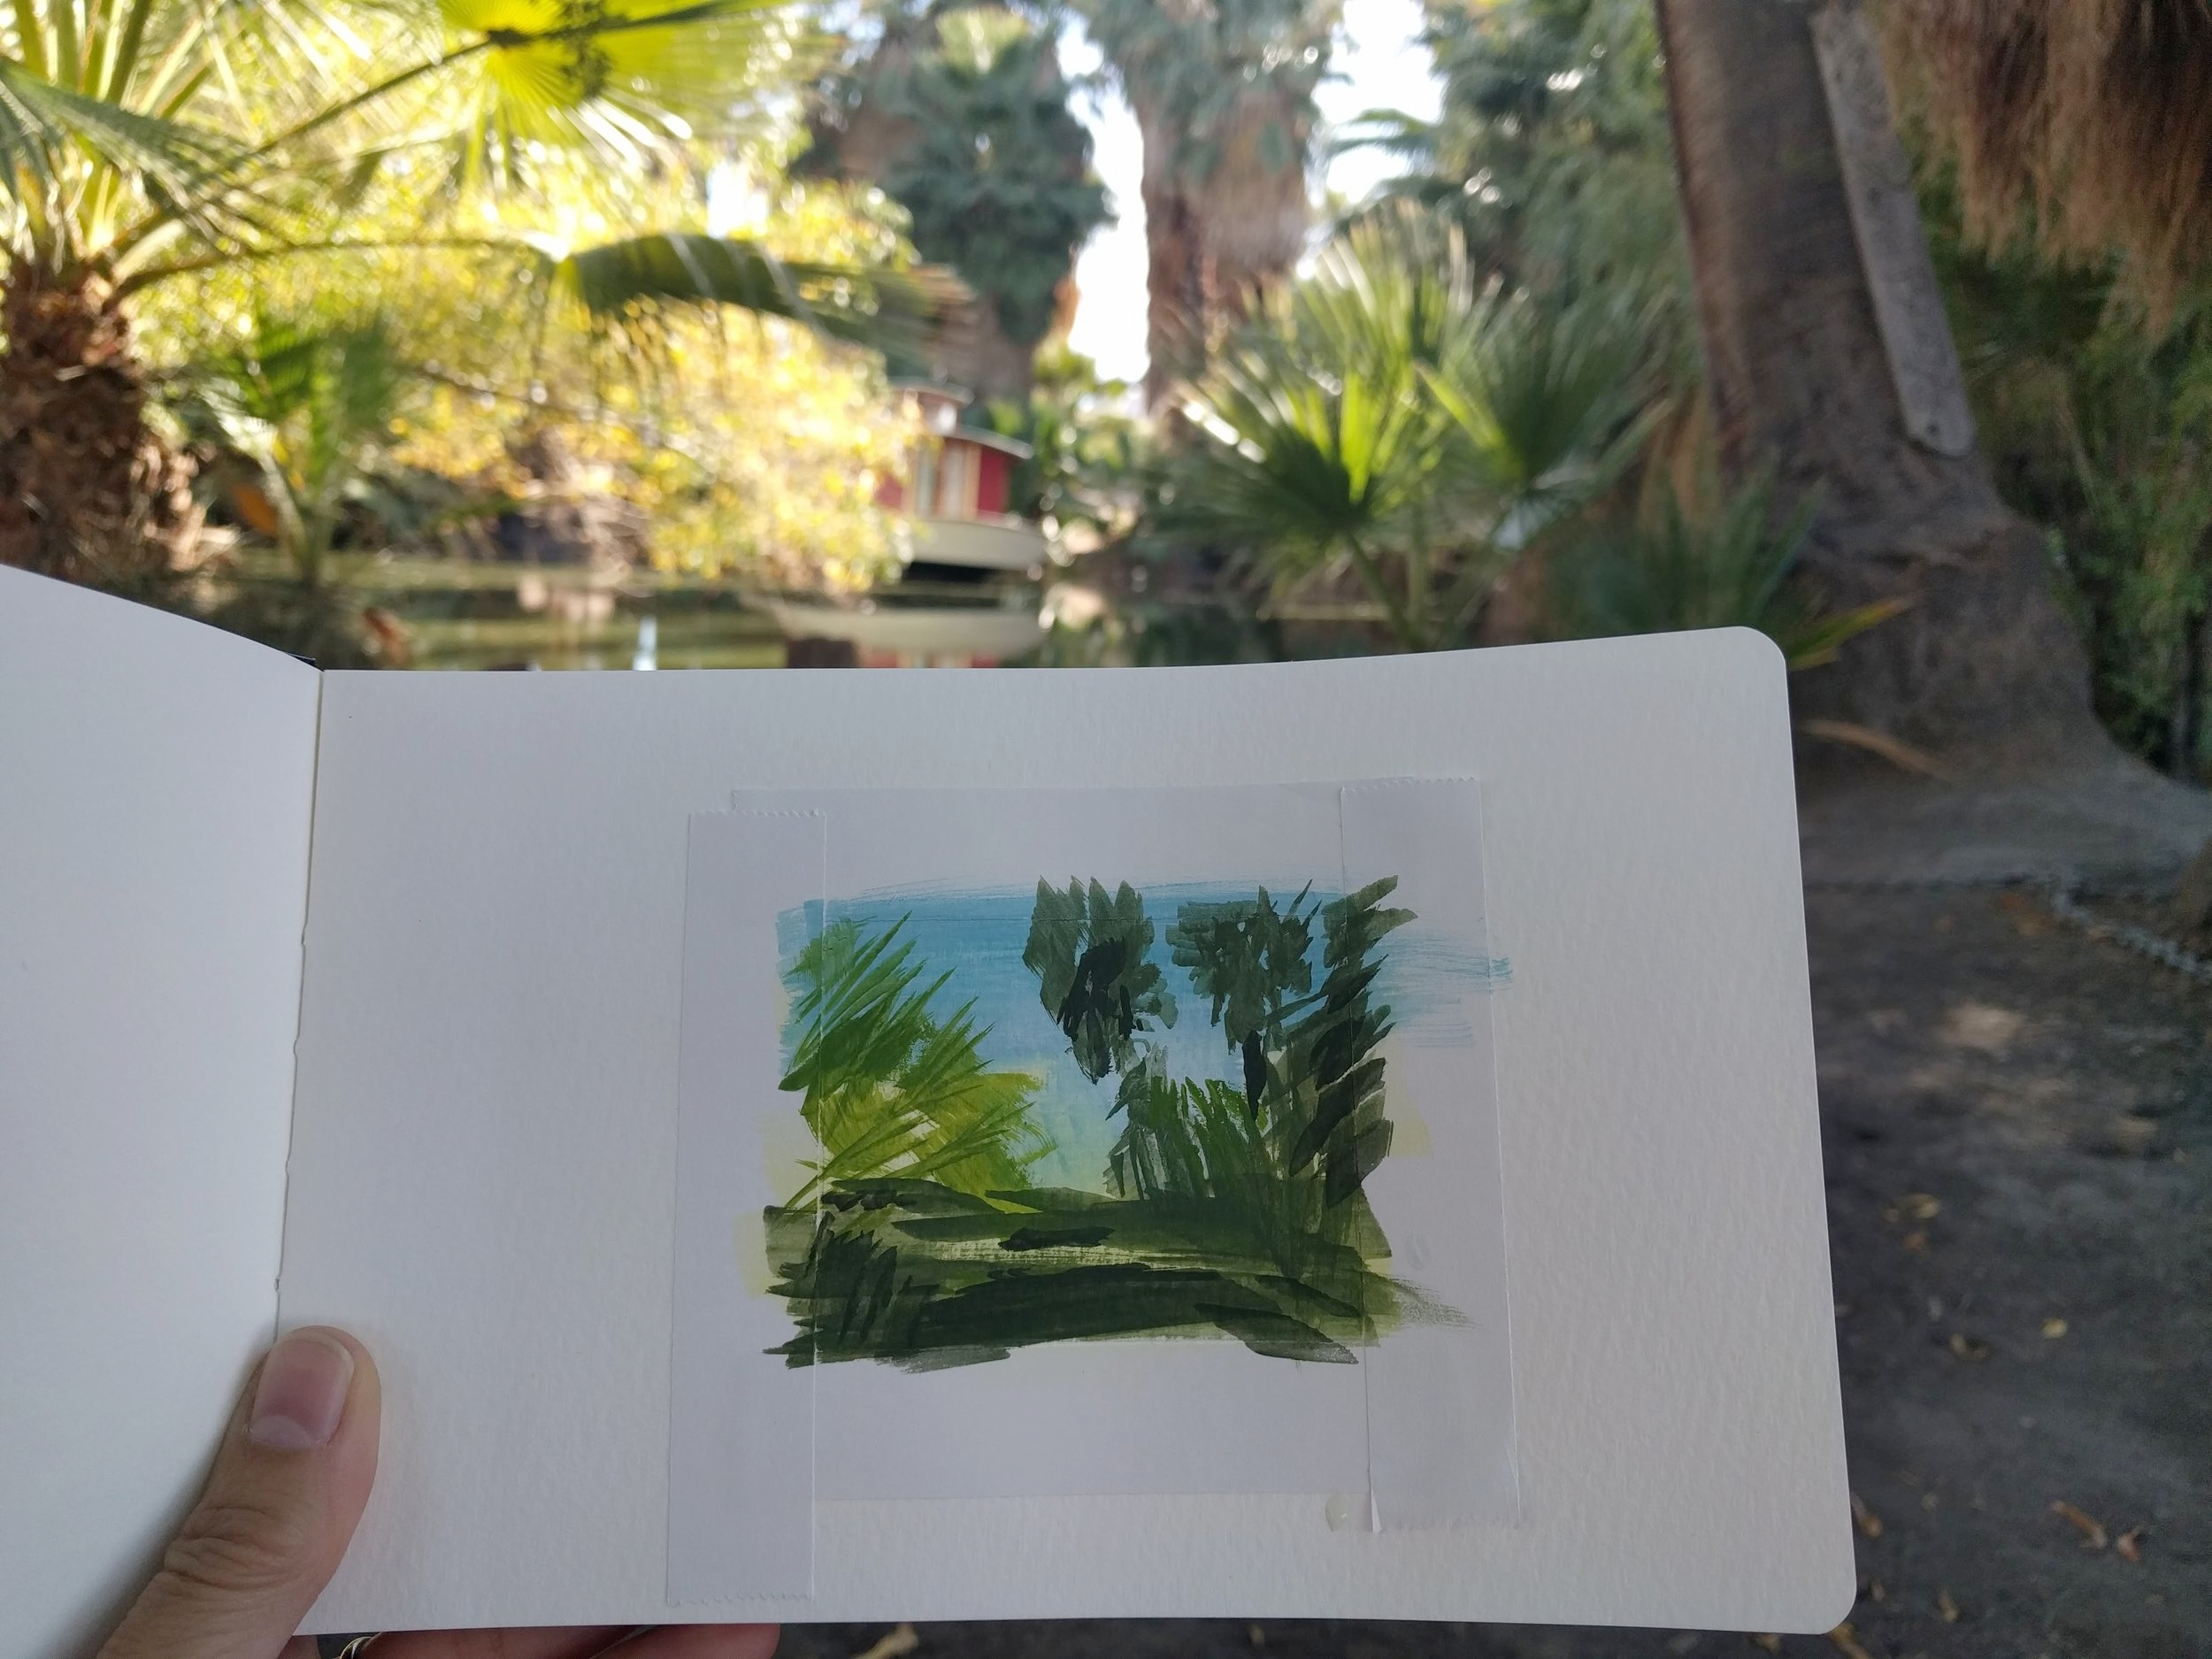 My Small Paintings miniature tiny art plein air watercolour painting of desert oasis with palm trees in 29 Palms Inn California, Sketchbook - progress view